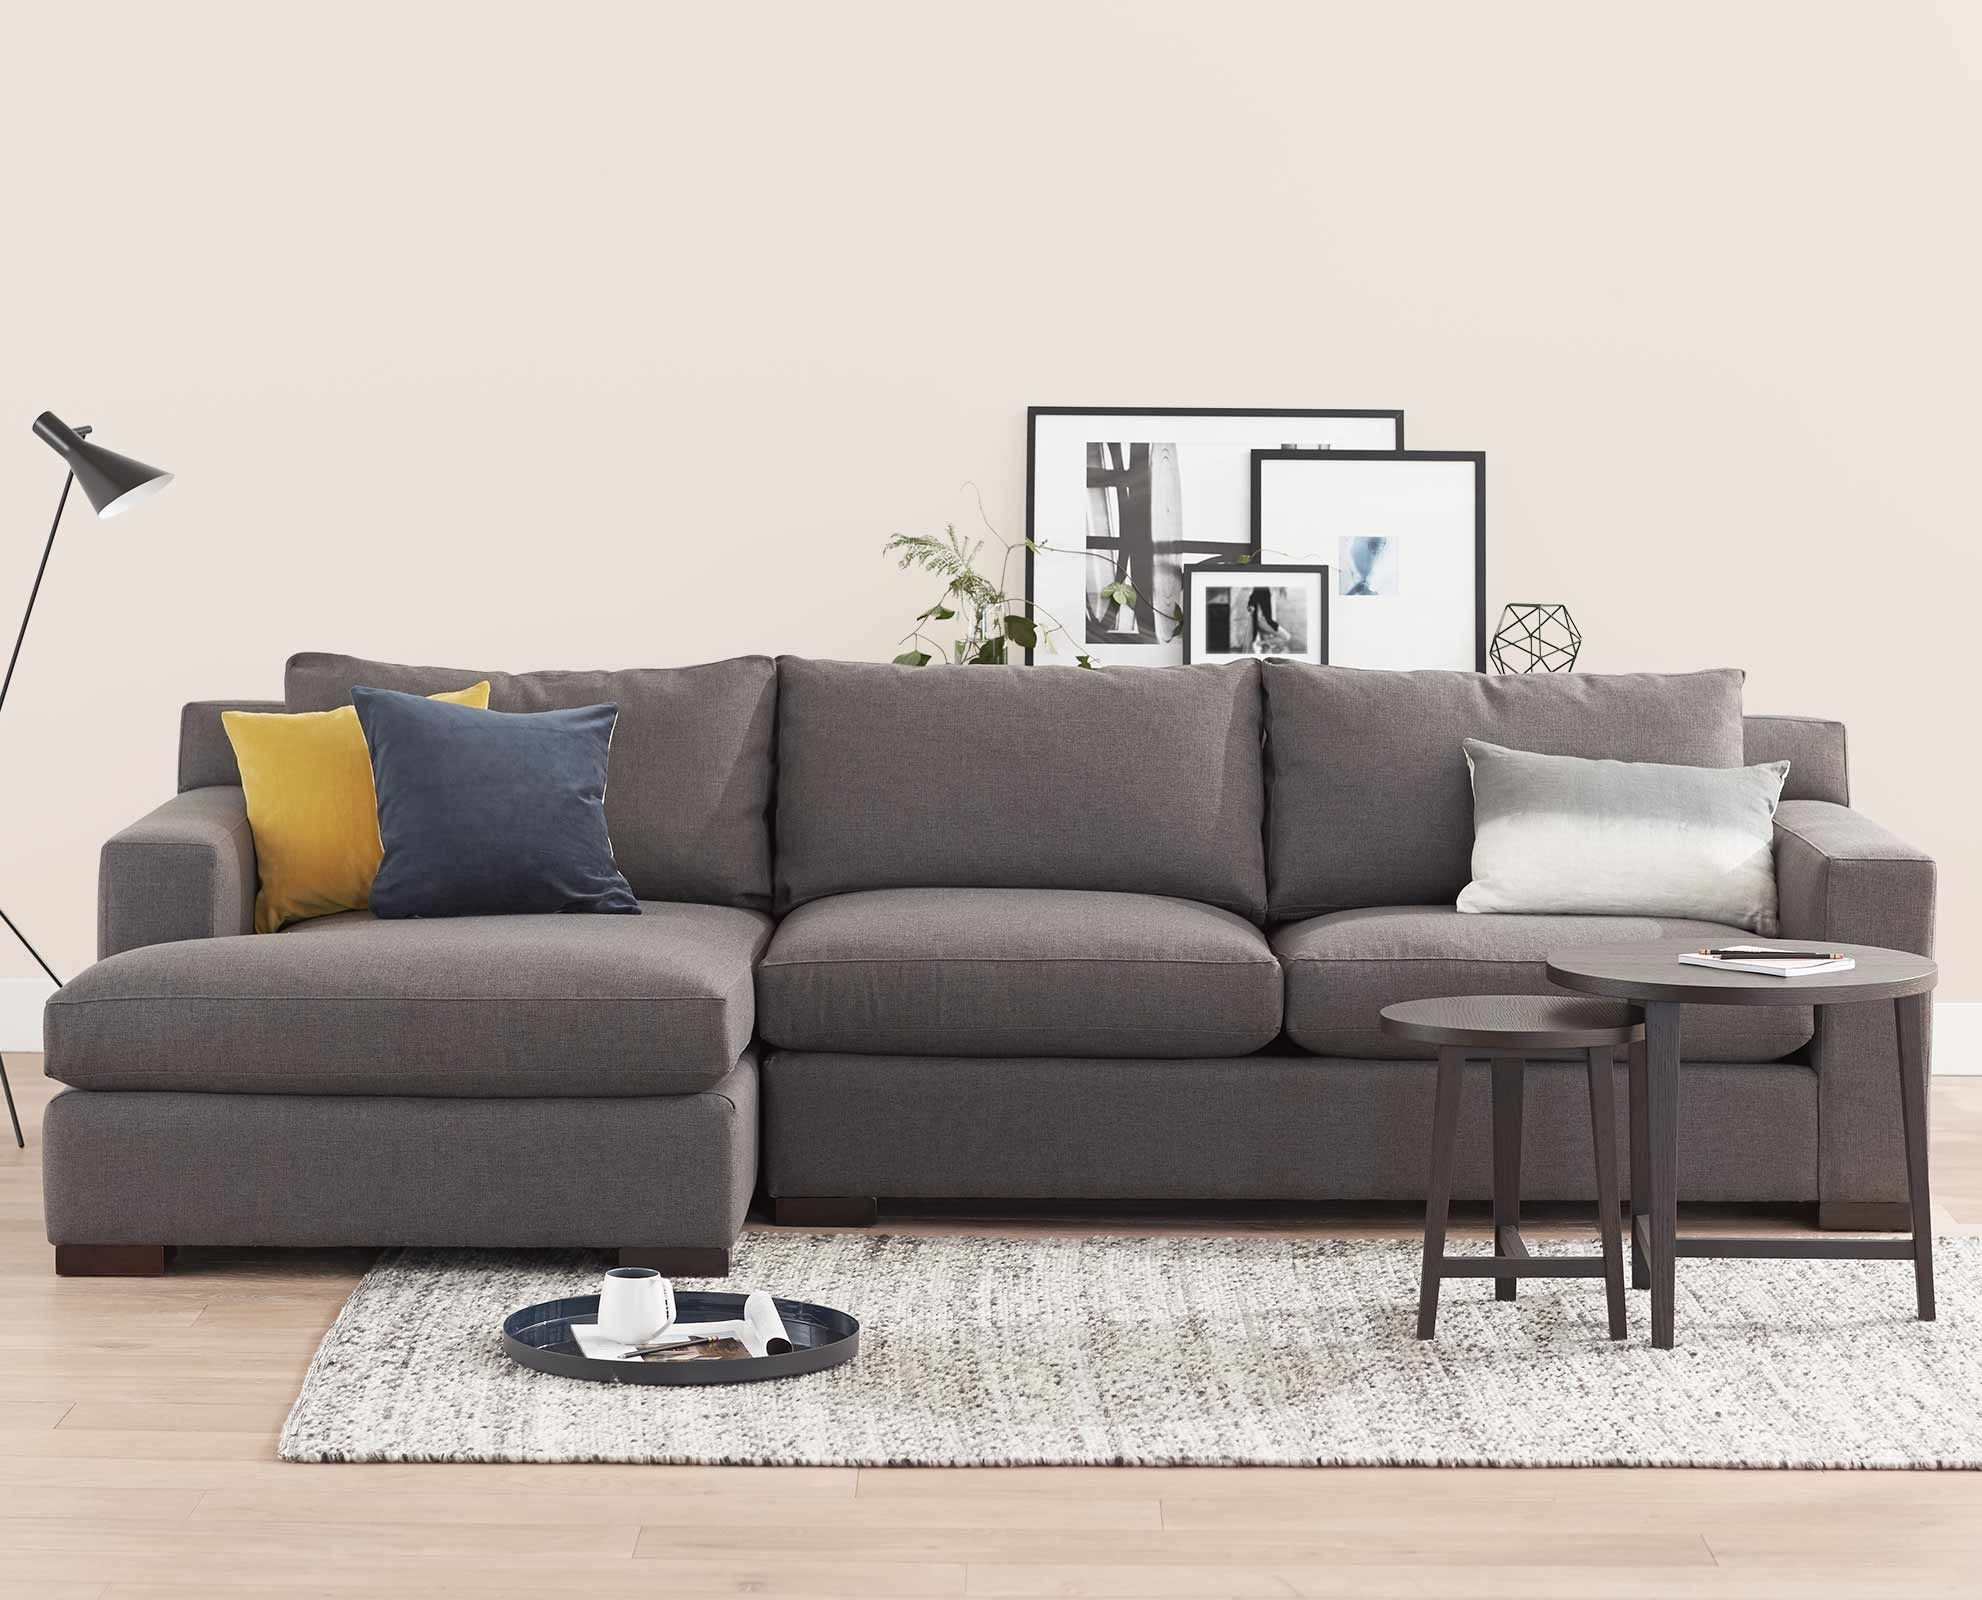 Scandinavian Designs - Always Cozy And Always Classic, The Aida within Travis Dk Grey Leather 6 Piece Power Reclining Sectionals With Power Headrest & Usb (Image 19 of 30)